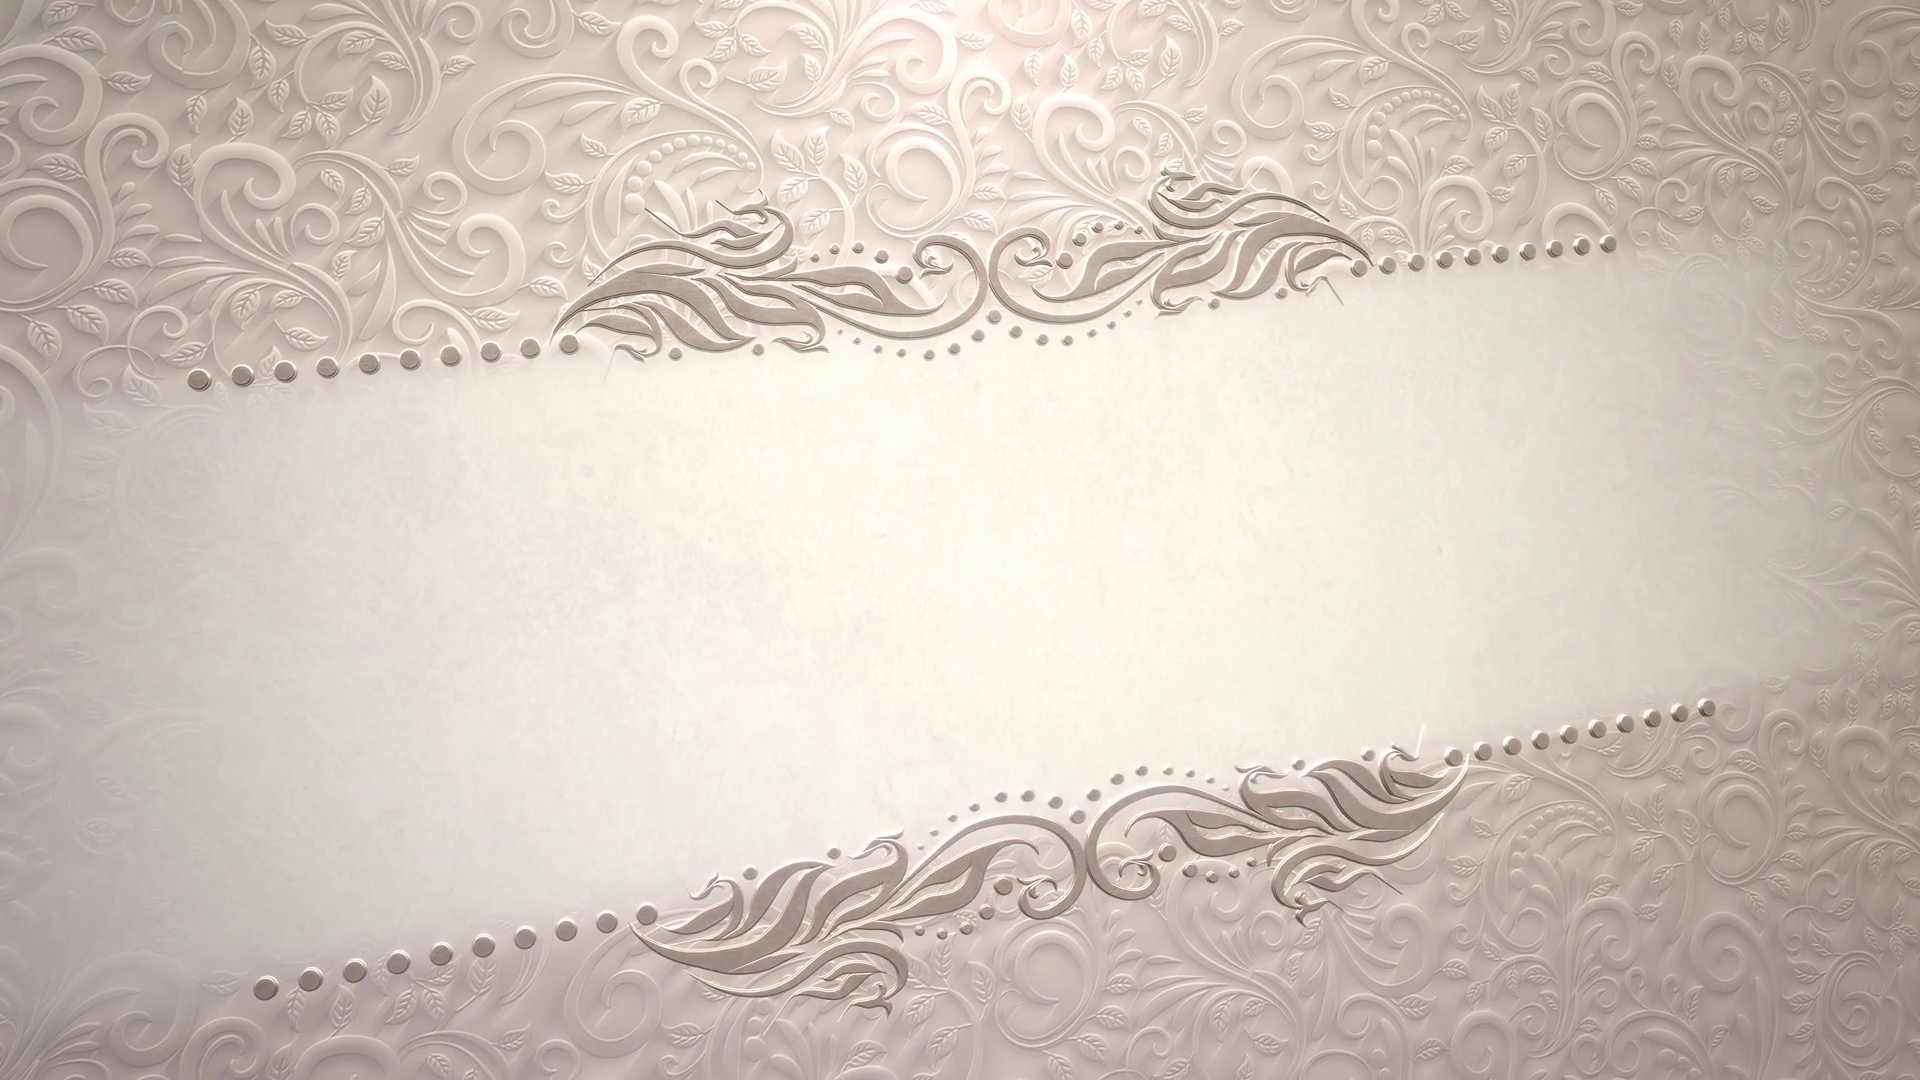 closeup vintage frame with flowers motion wedding background elegant and luxury pastel style animation footage motion background storyblocks closeup vintage frame with flowers motion wedding background elegant and luxury pastel style animation footage